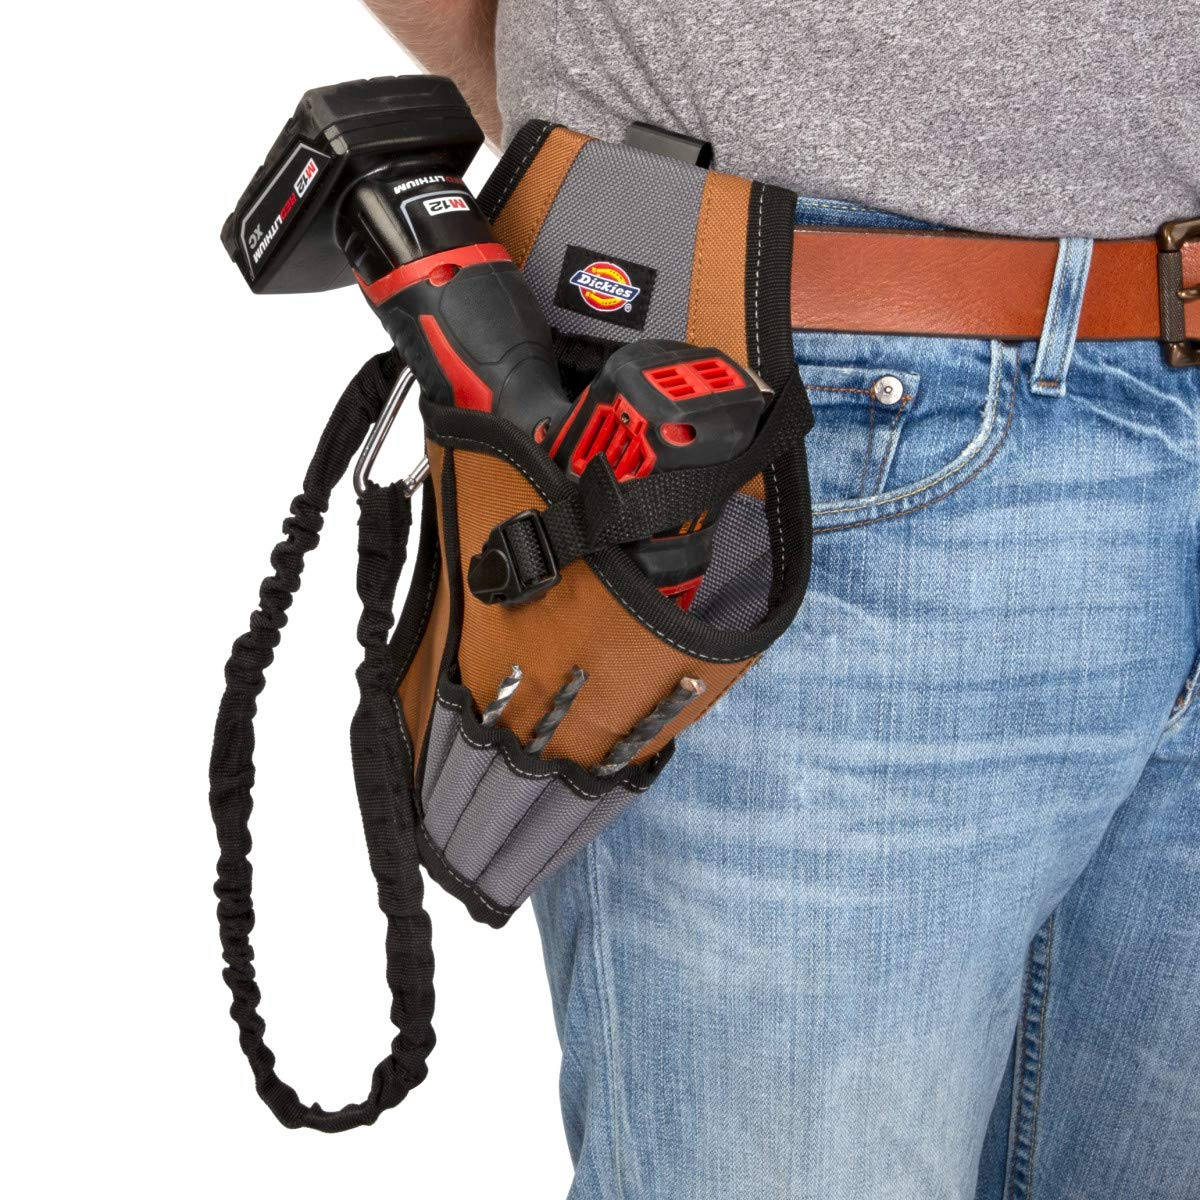 Dickies Work Gear 57097 5-Pocket Drill Holster with Safety Tether by Dickies Work Gear (Image #4)